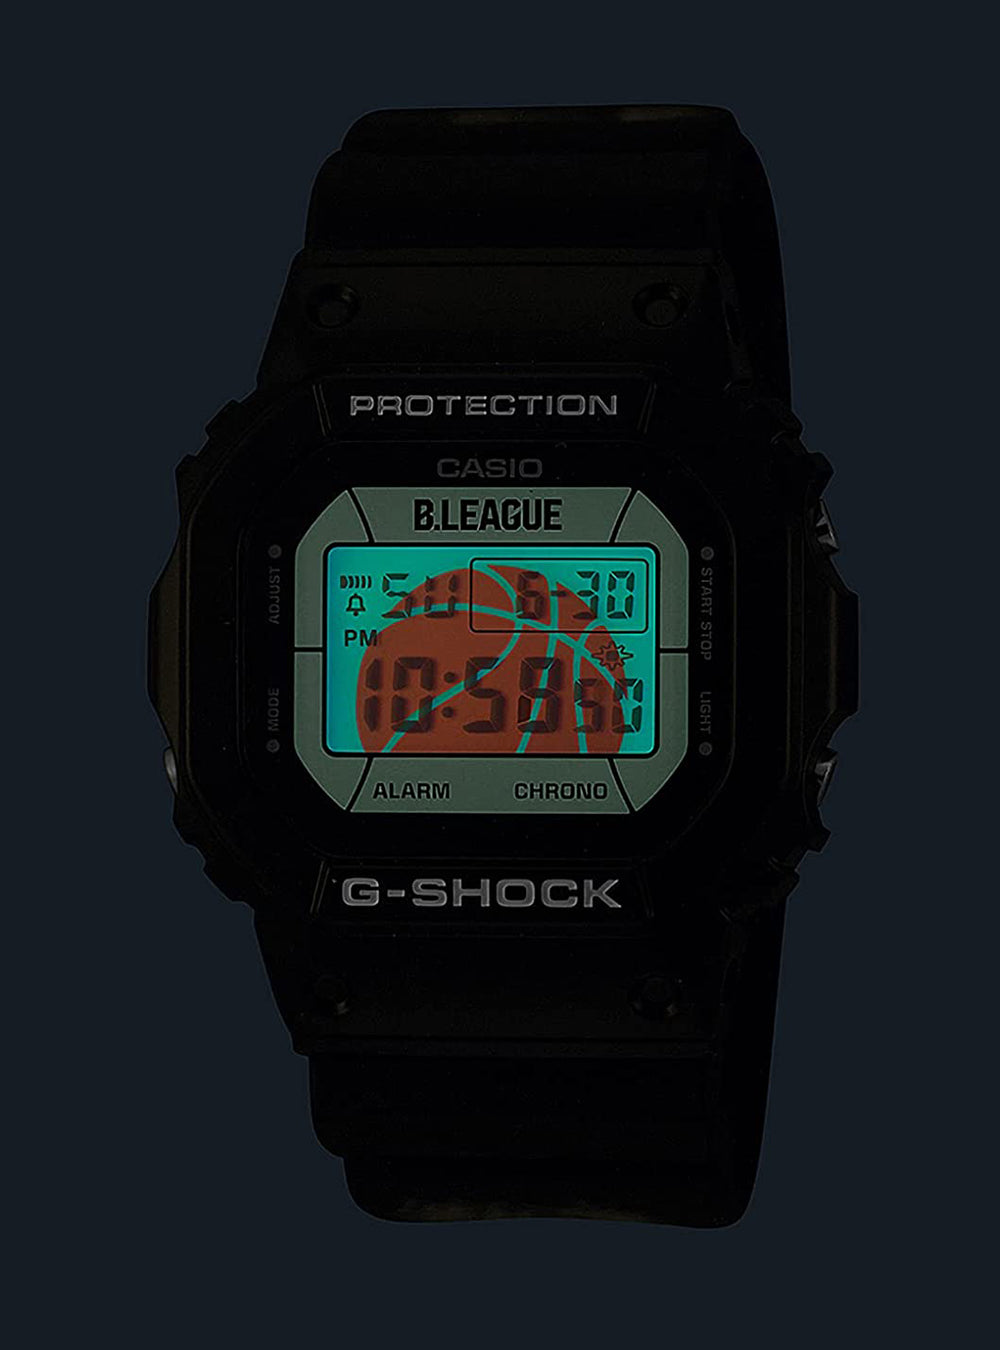 CASIO G-SHOCK B.LEAGUE × G-SHOCK COLLABORATION MODEL DW-5600BLG21-1JR LIMITED EDITION JDM